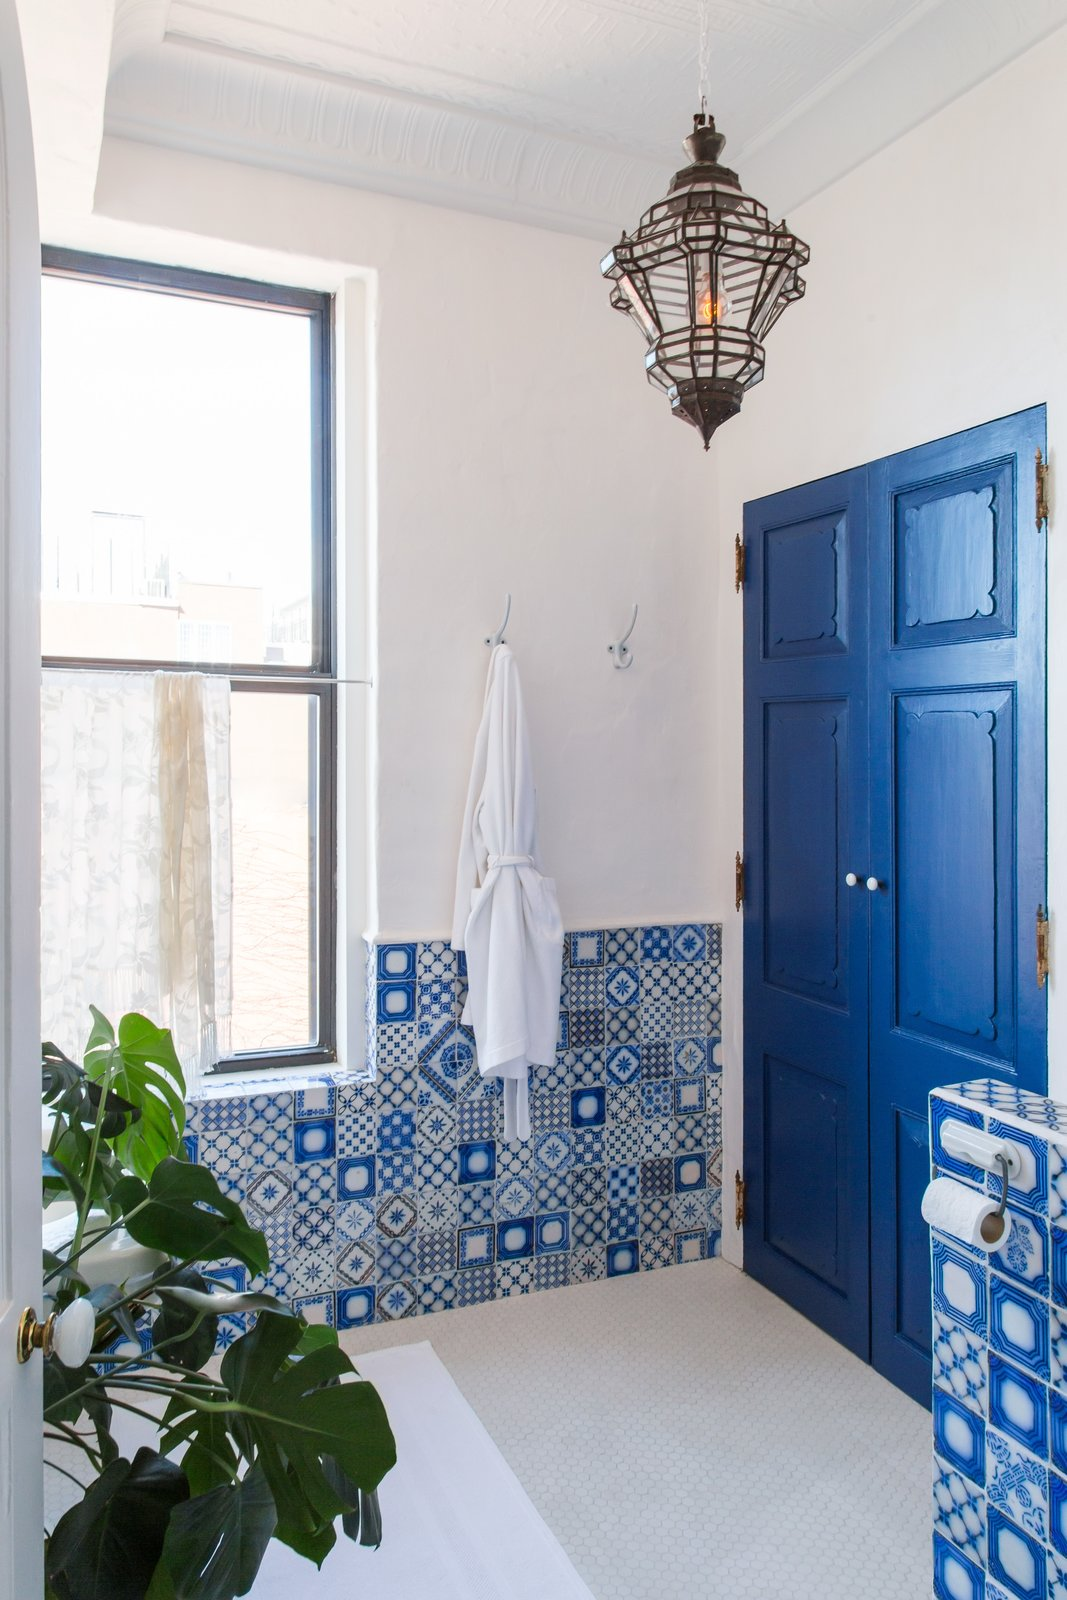 Bath Room, Pendant Lighting, and Ceramic Tile Wall  Photo 13 of 22 in A 19th-Century Schoolhouse in Brooklyn Becomes a Classy Apartment